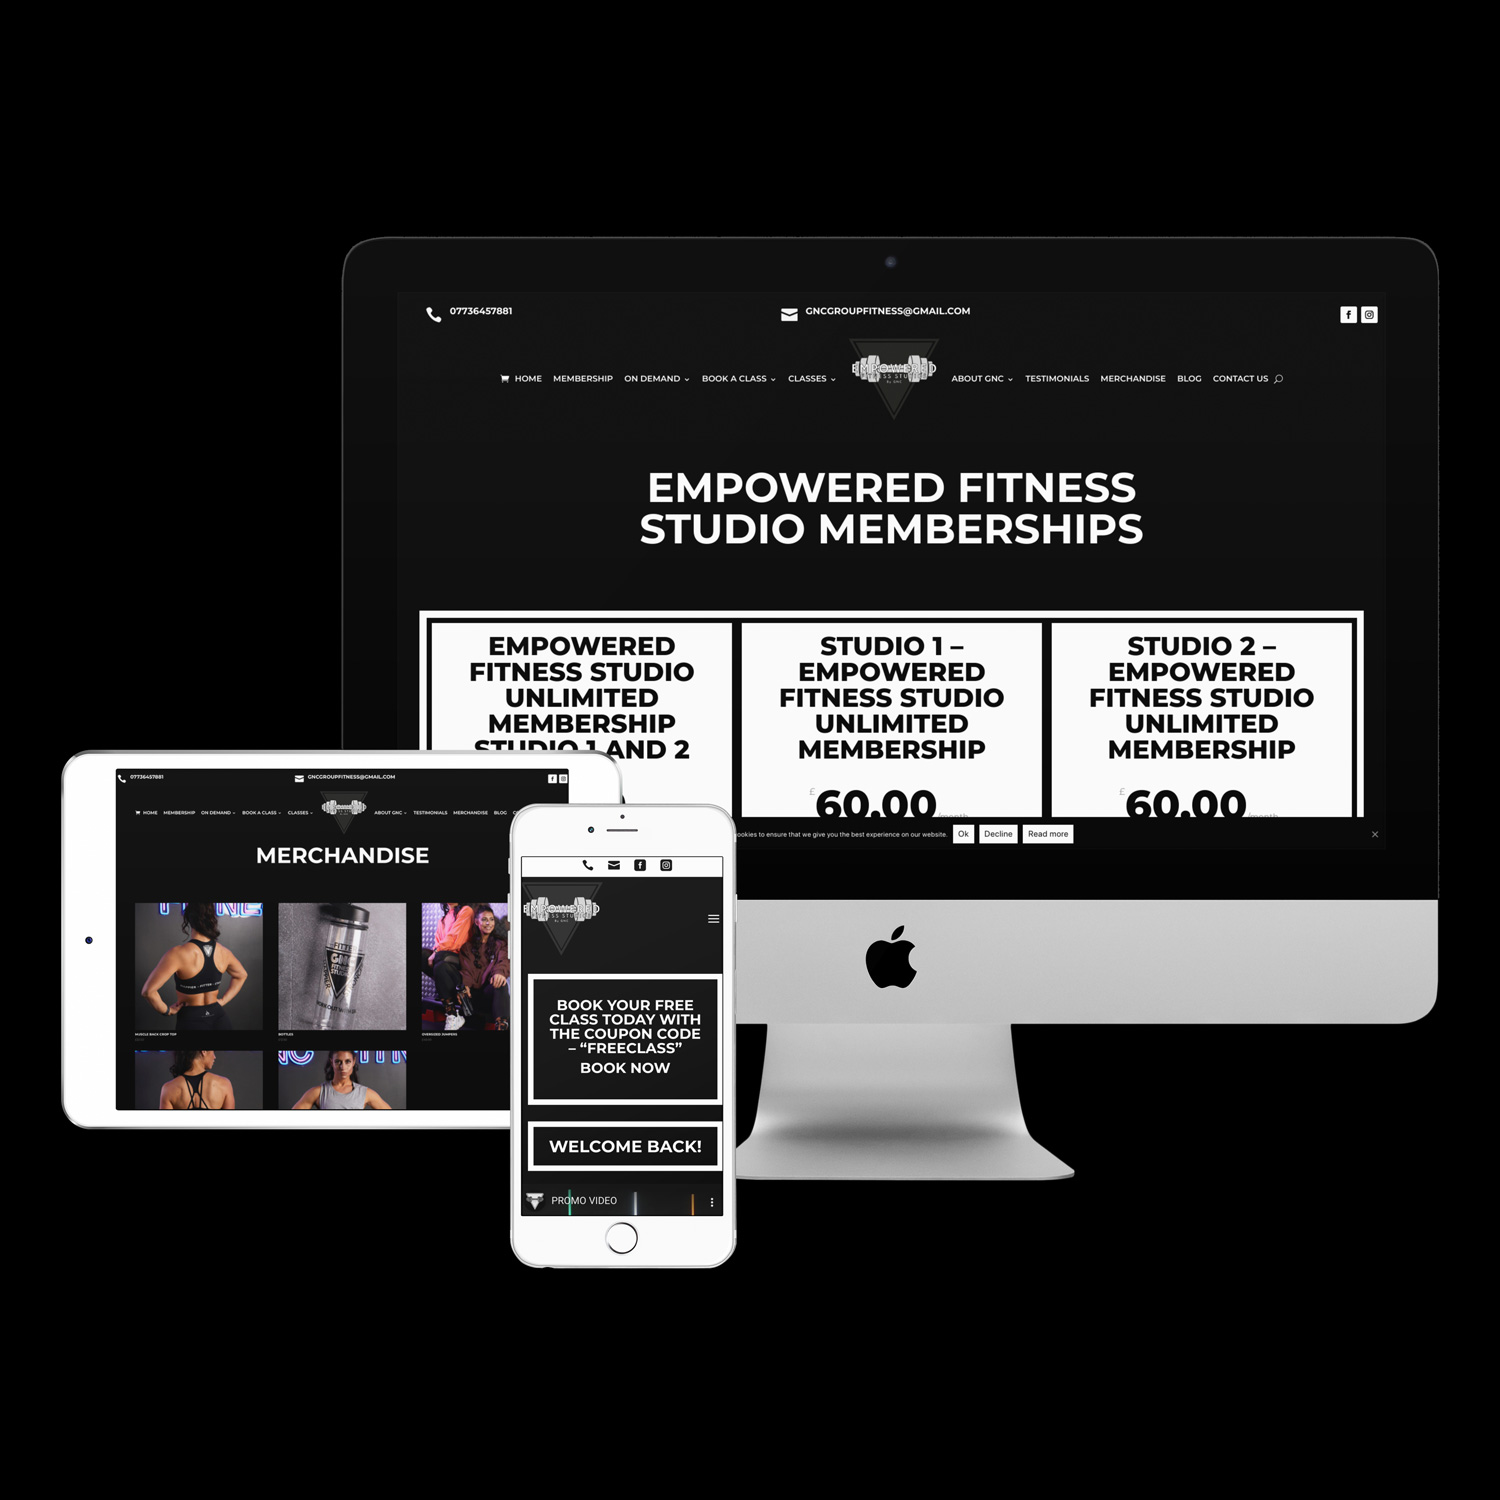 Empowered Fitness by GNC website on multiple devices